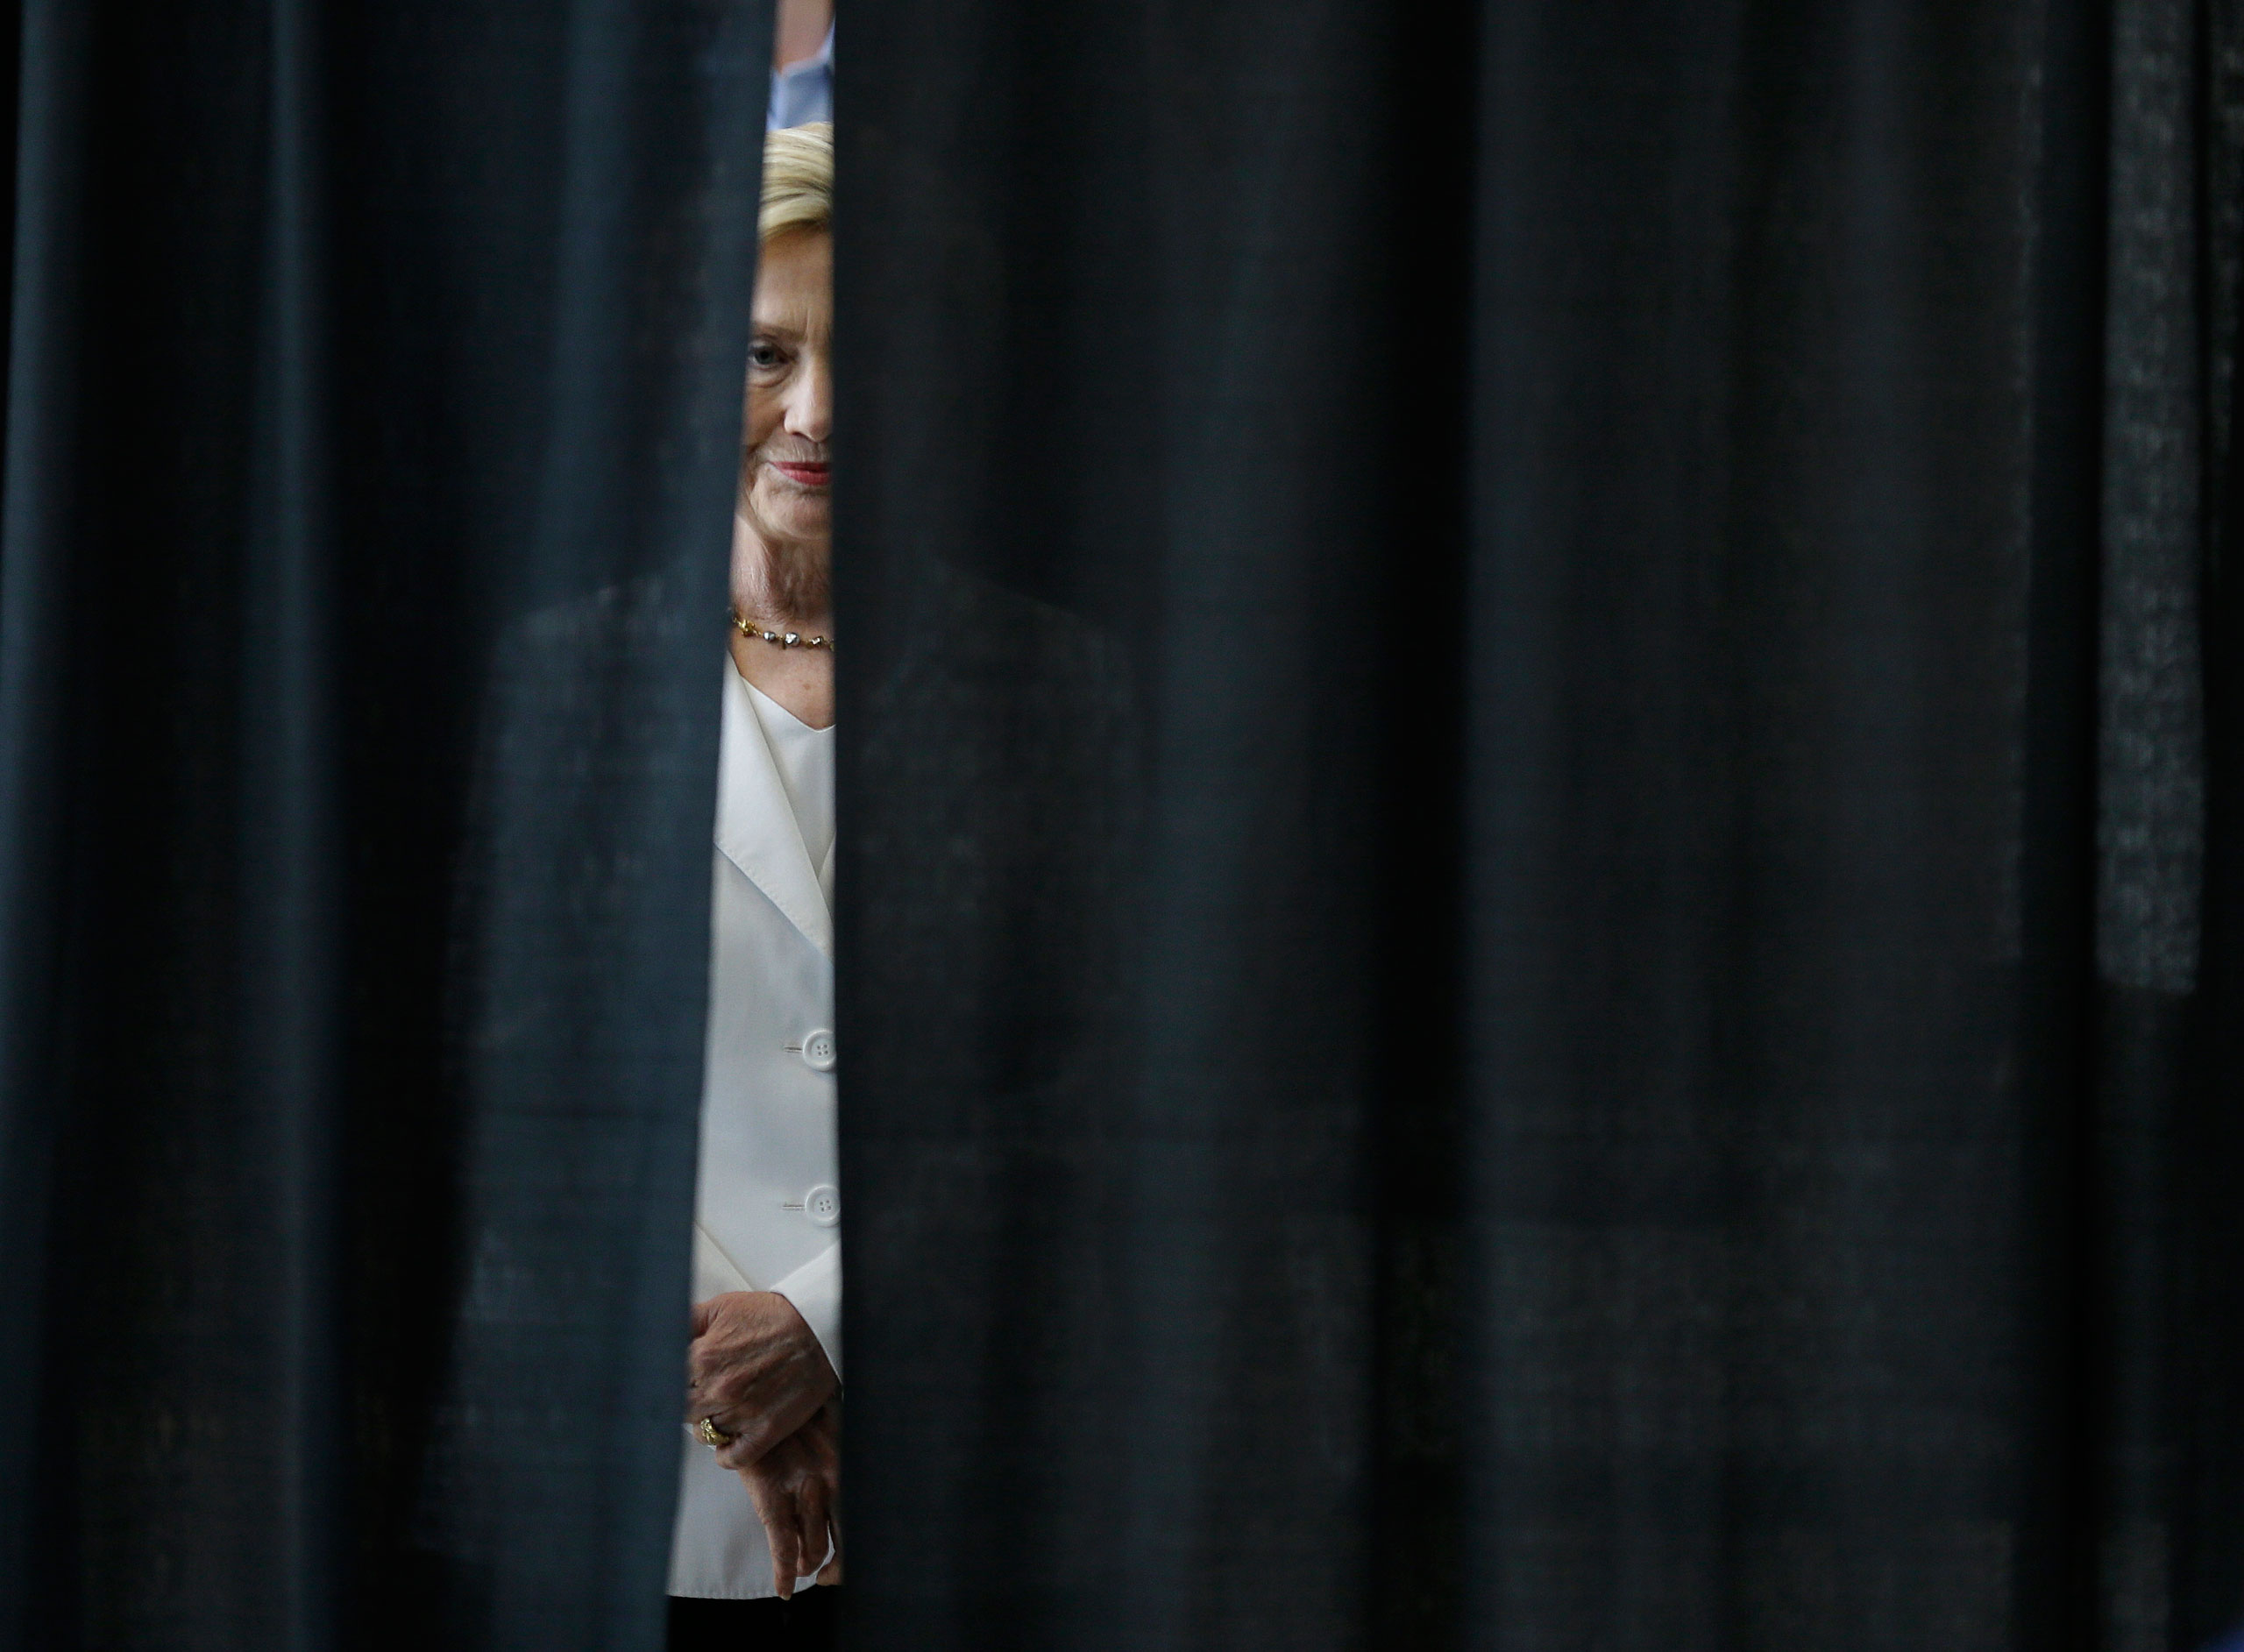 Democratic presidential candidate Hillary Rodham Clinton waits to be introduced before speaking about rural issues at the Des Moines Area Community College, in Ankeny, Iowa. Aug. 26, 2015.